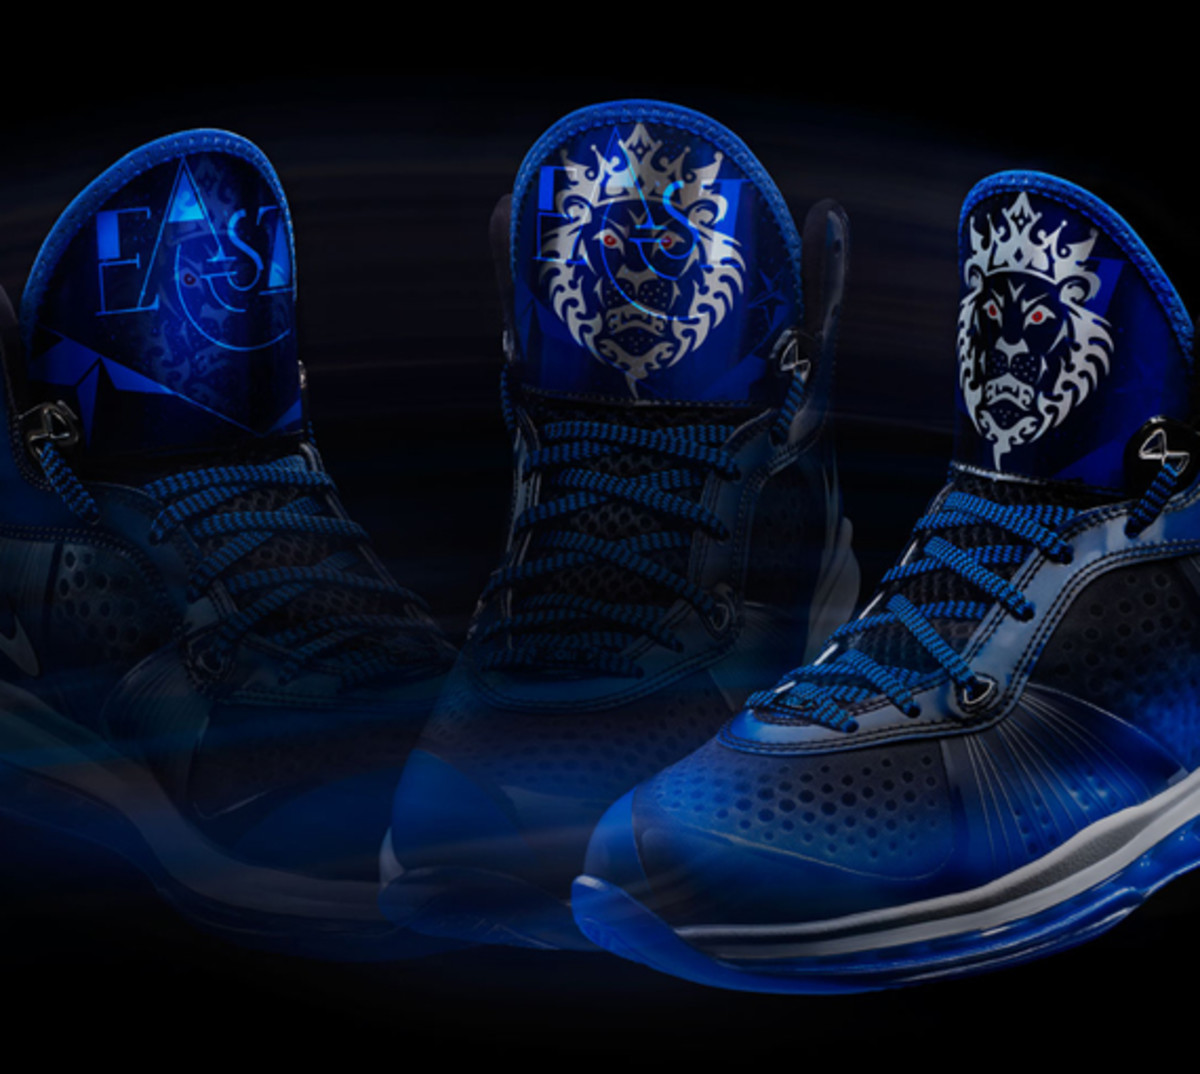 Nike LeBron 8  LeBron James   2011 All Star Game Attack From All Angles